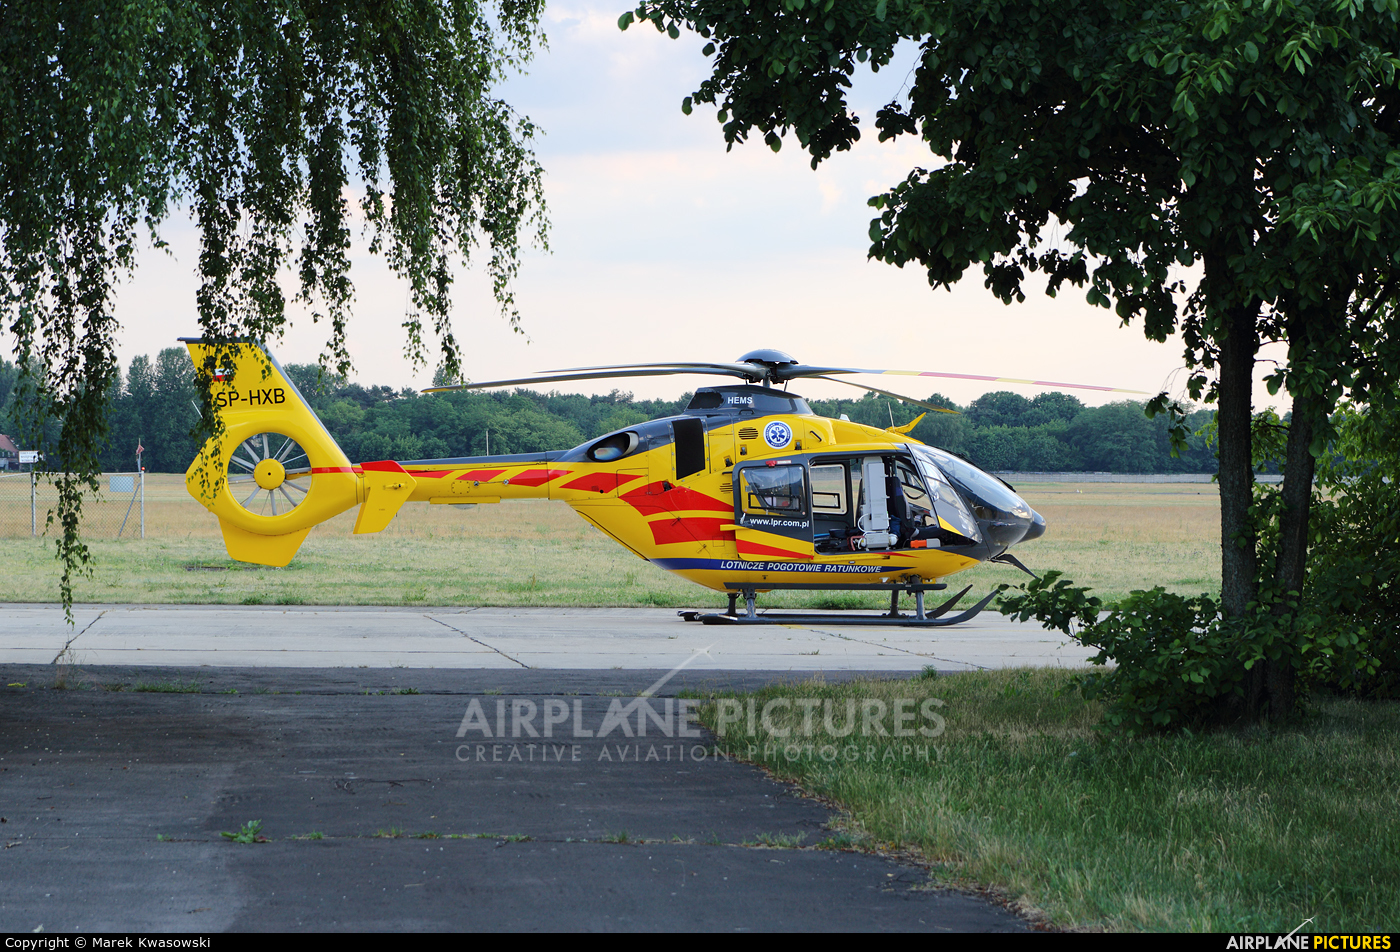 Polish Medical Air Rescue - Lotnicze Pogotowie Ratunkowe SP-HXB aircraft at Warsaw - Babice